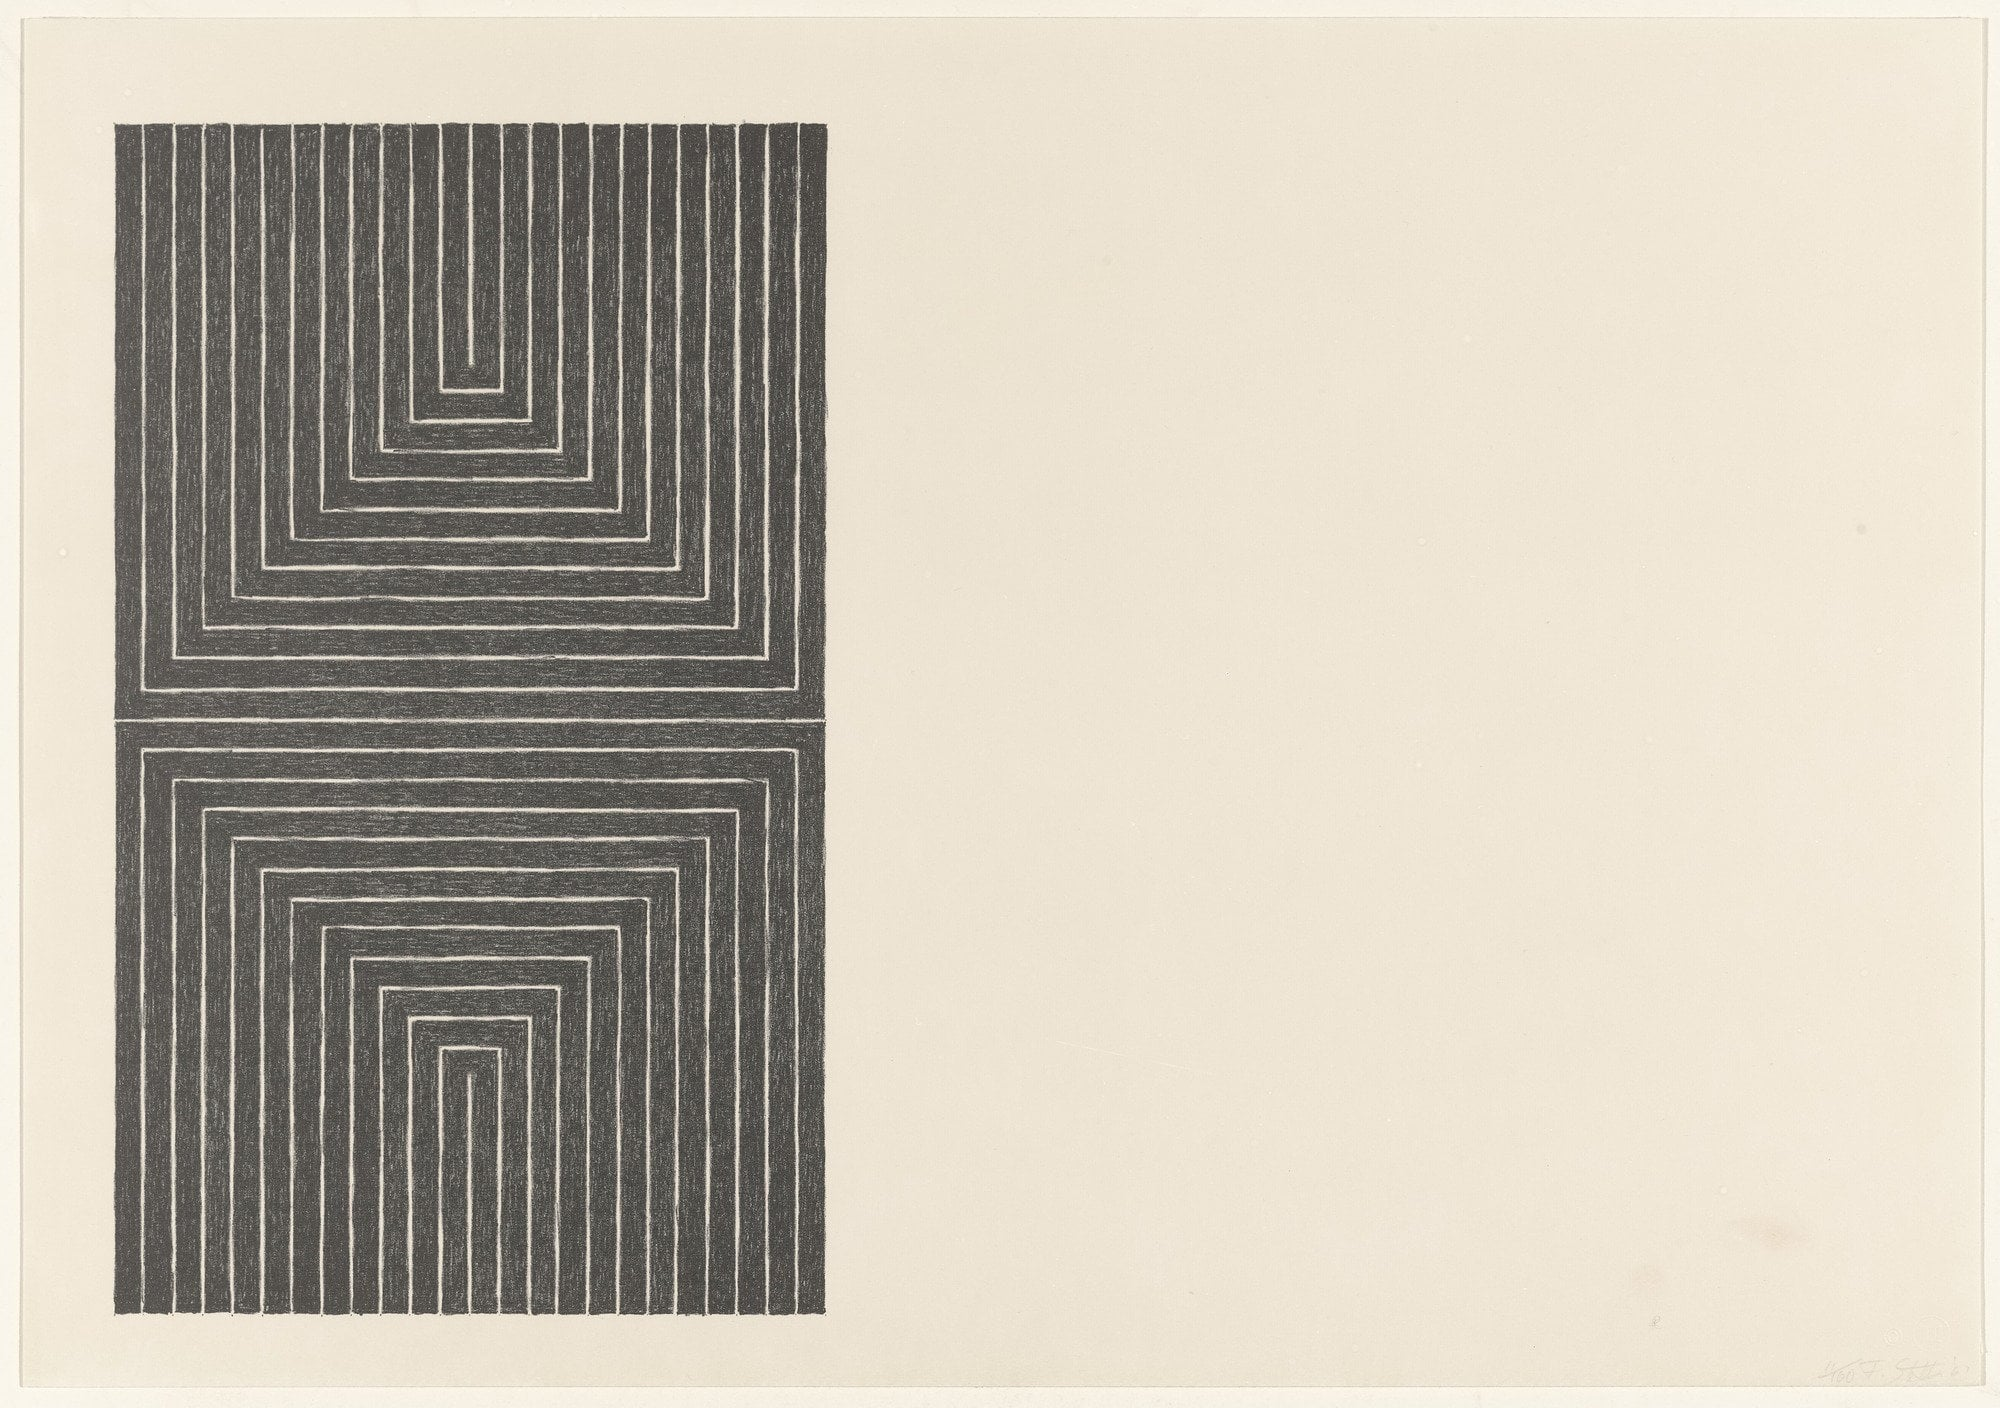 Frank Stella ,  Arundel Castle from Black Series I  1967